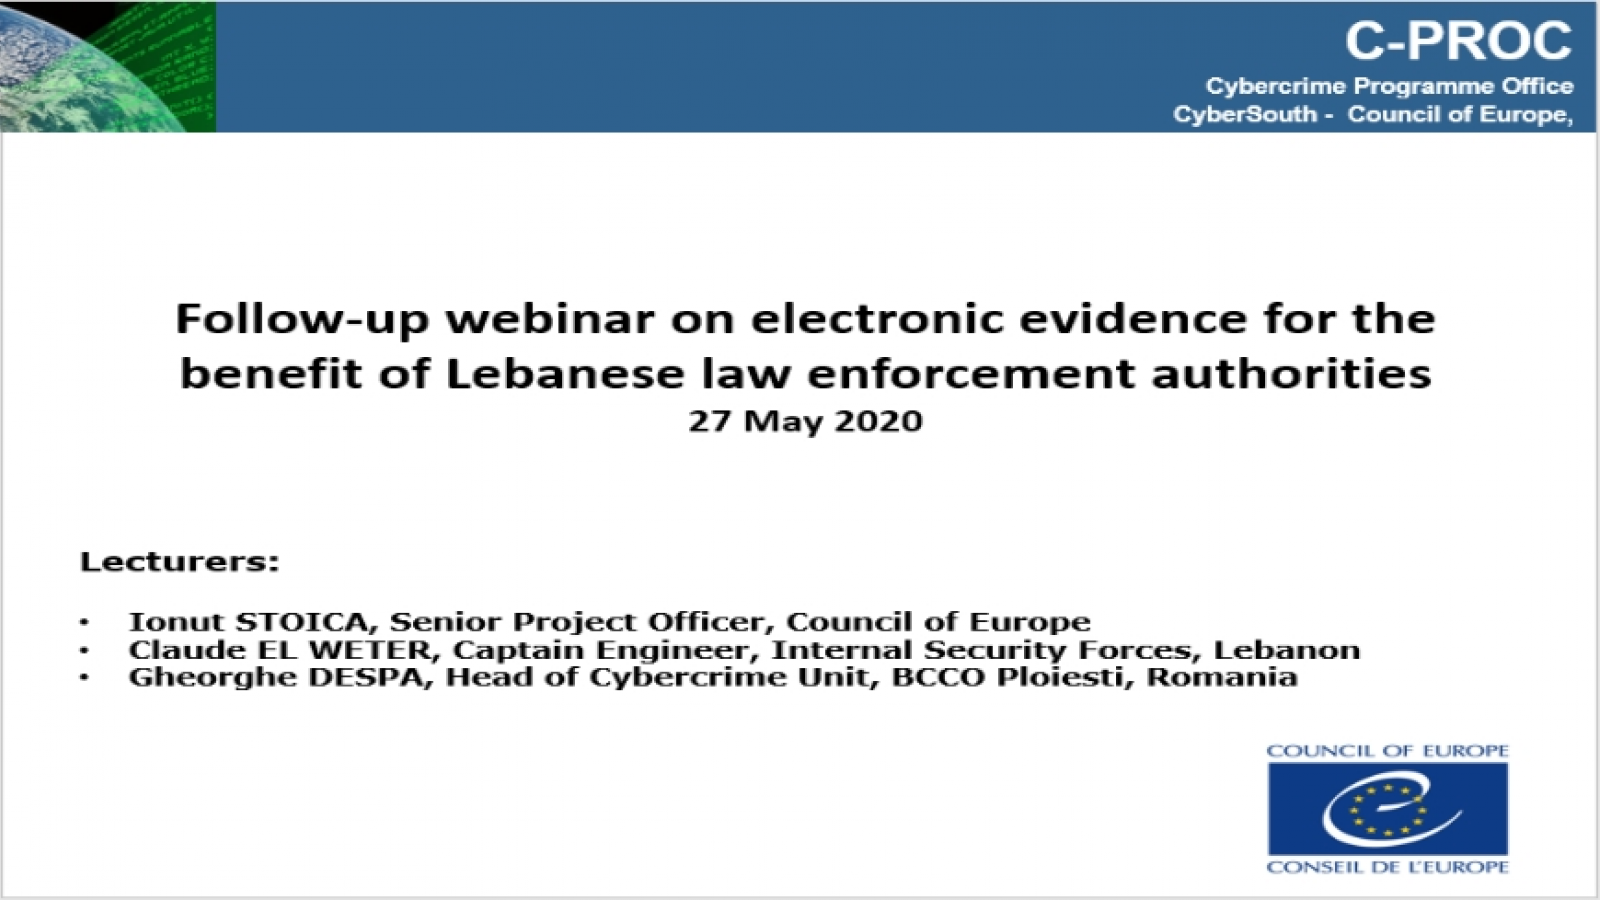 Lebanon: CyberSouth follow up webinar on electronic evidence